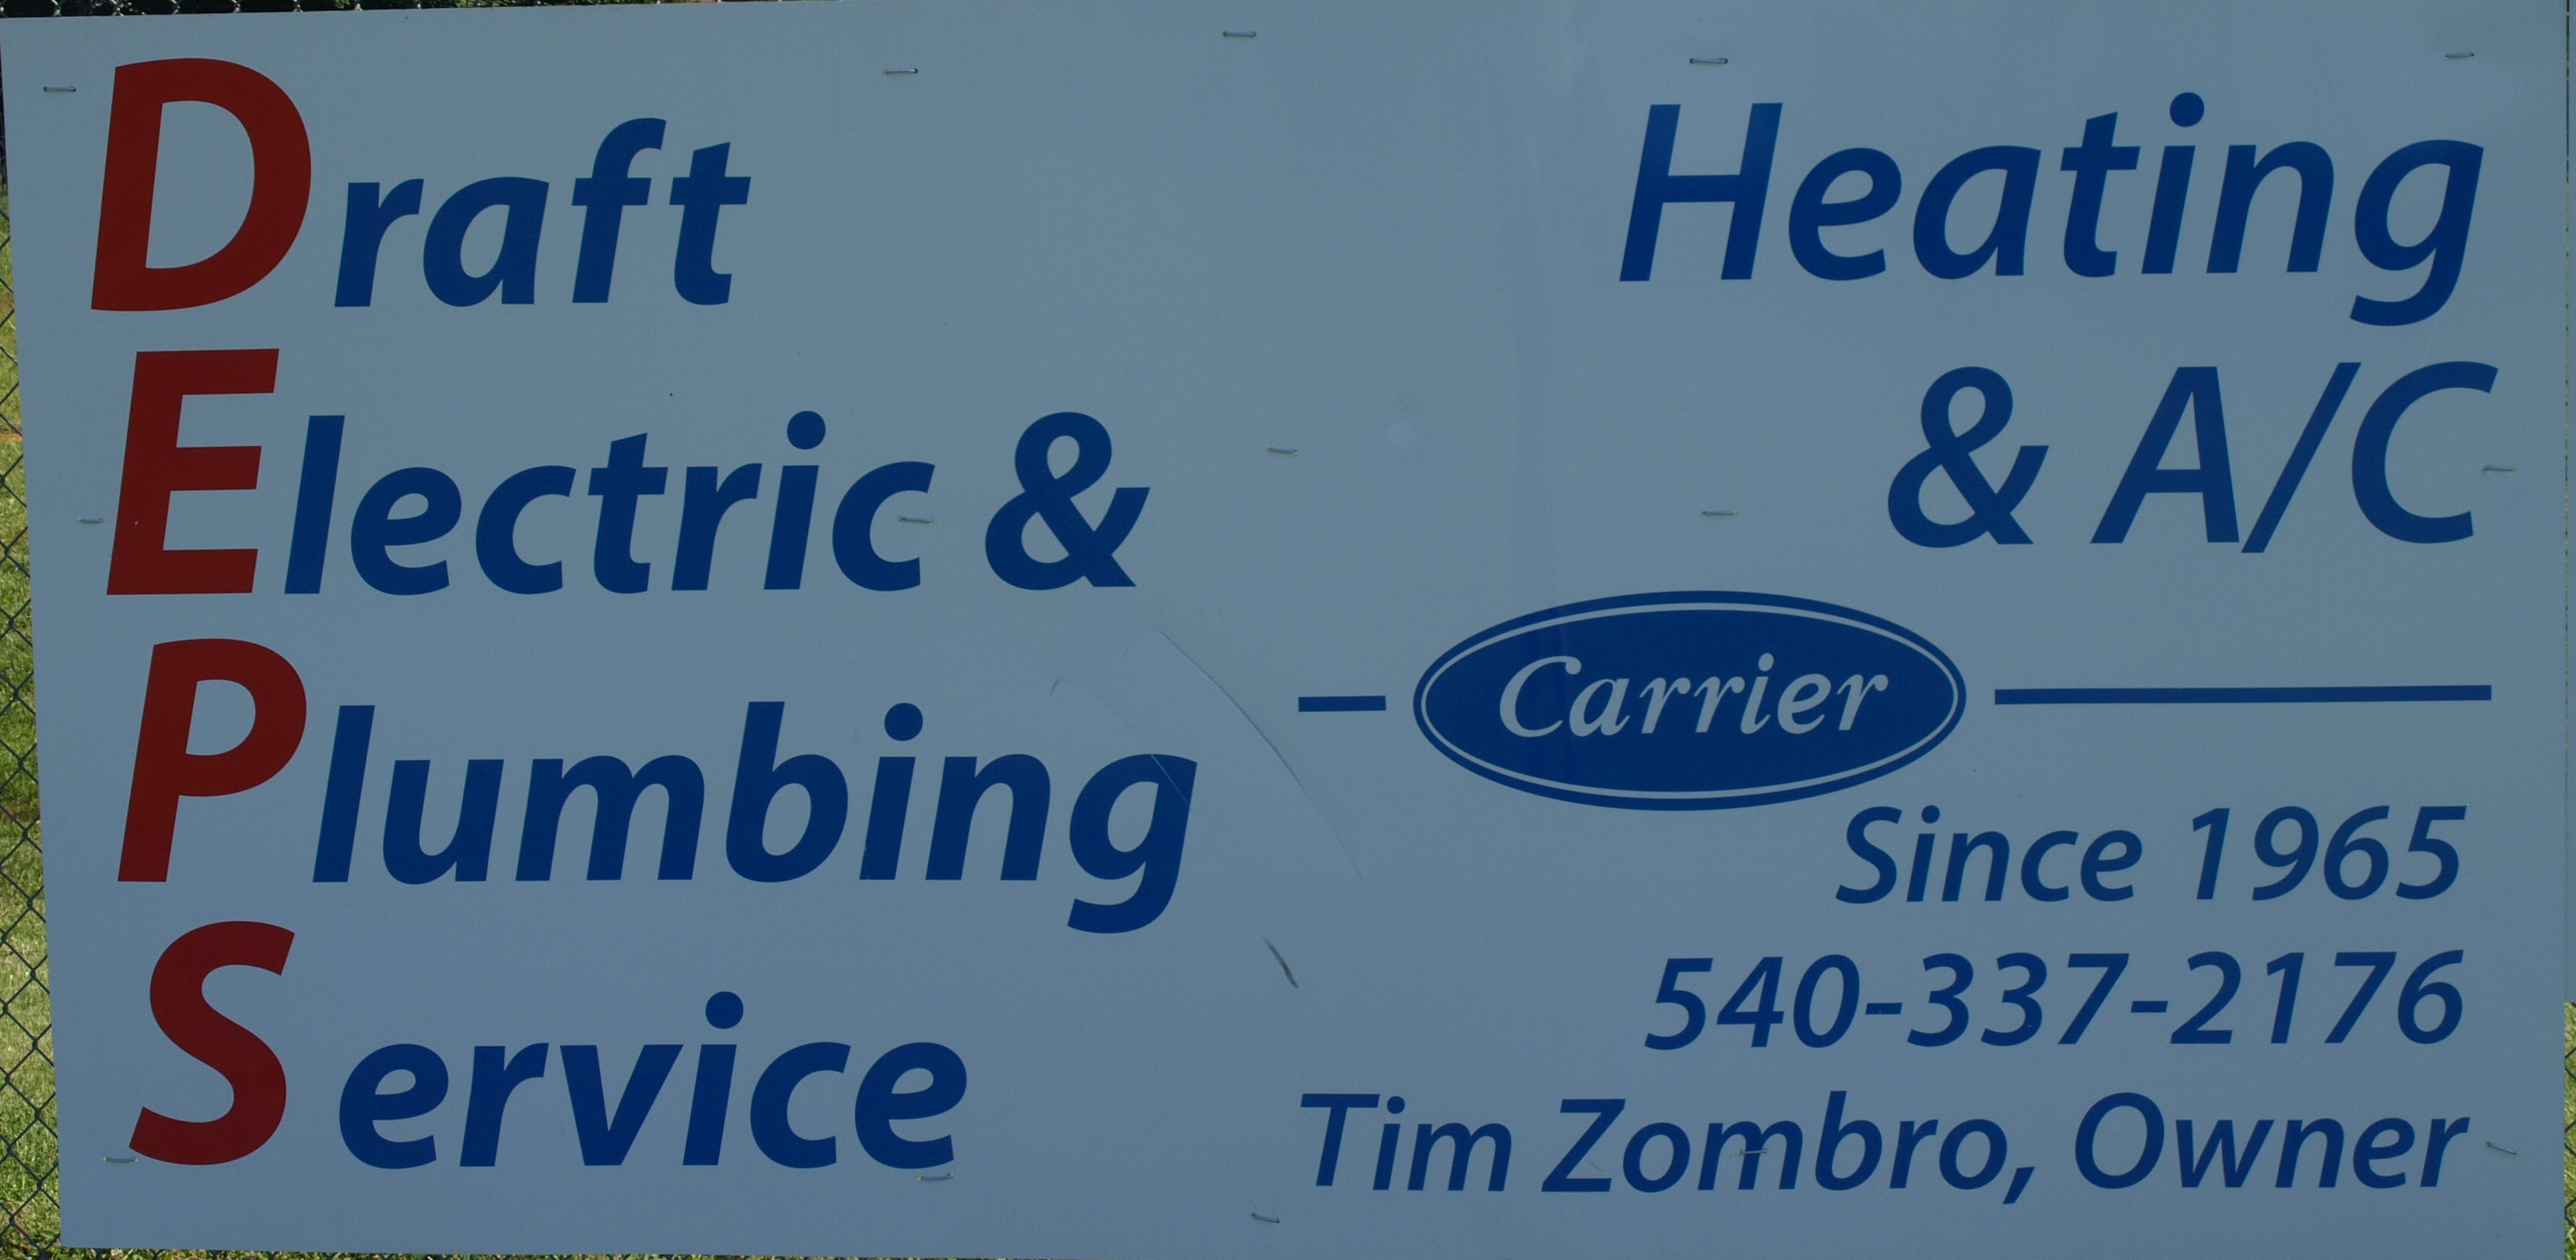 Draft Electric & Plumbing Service